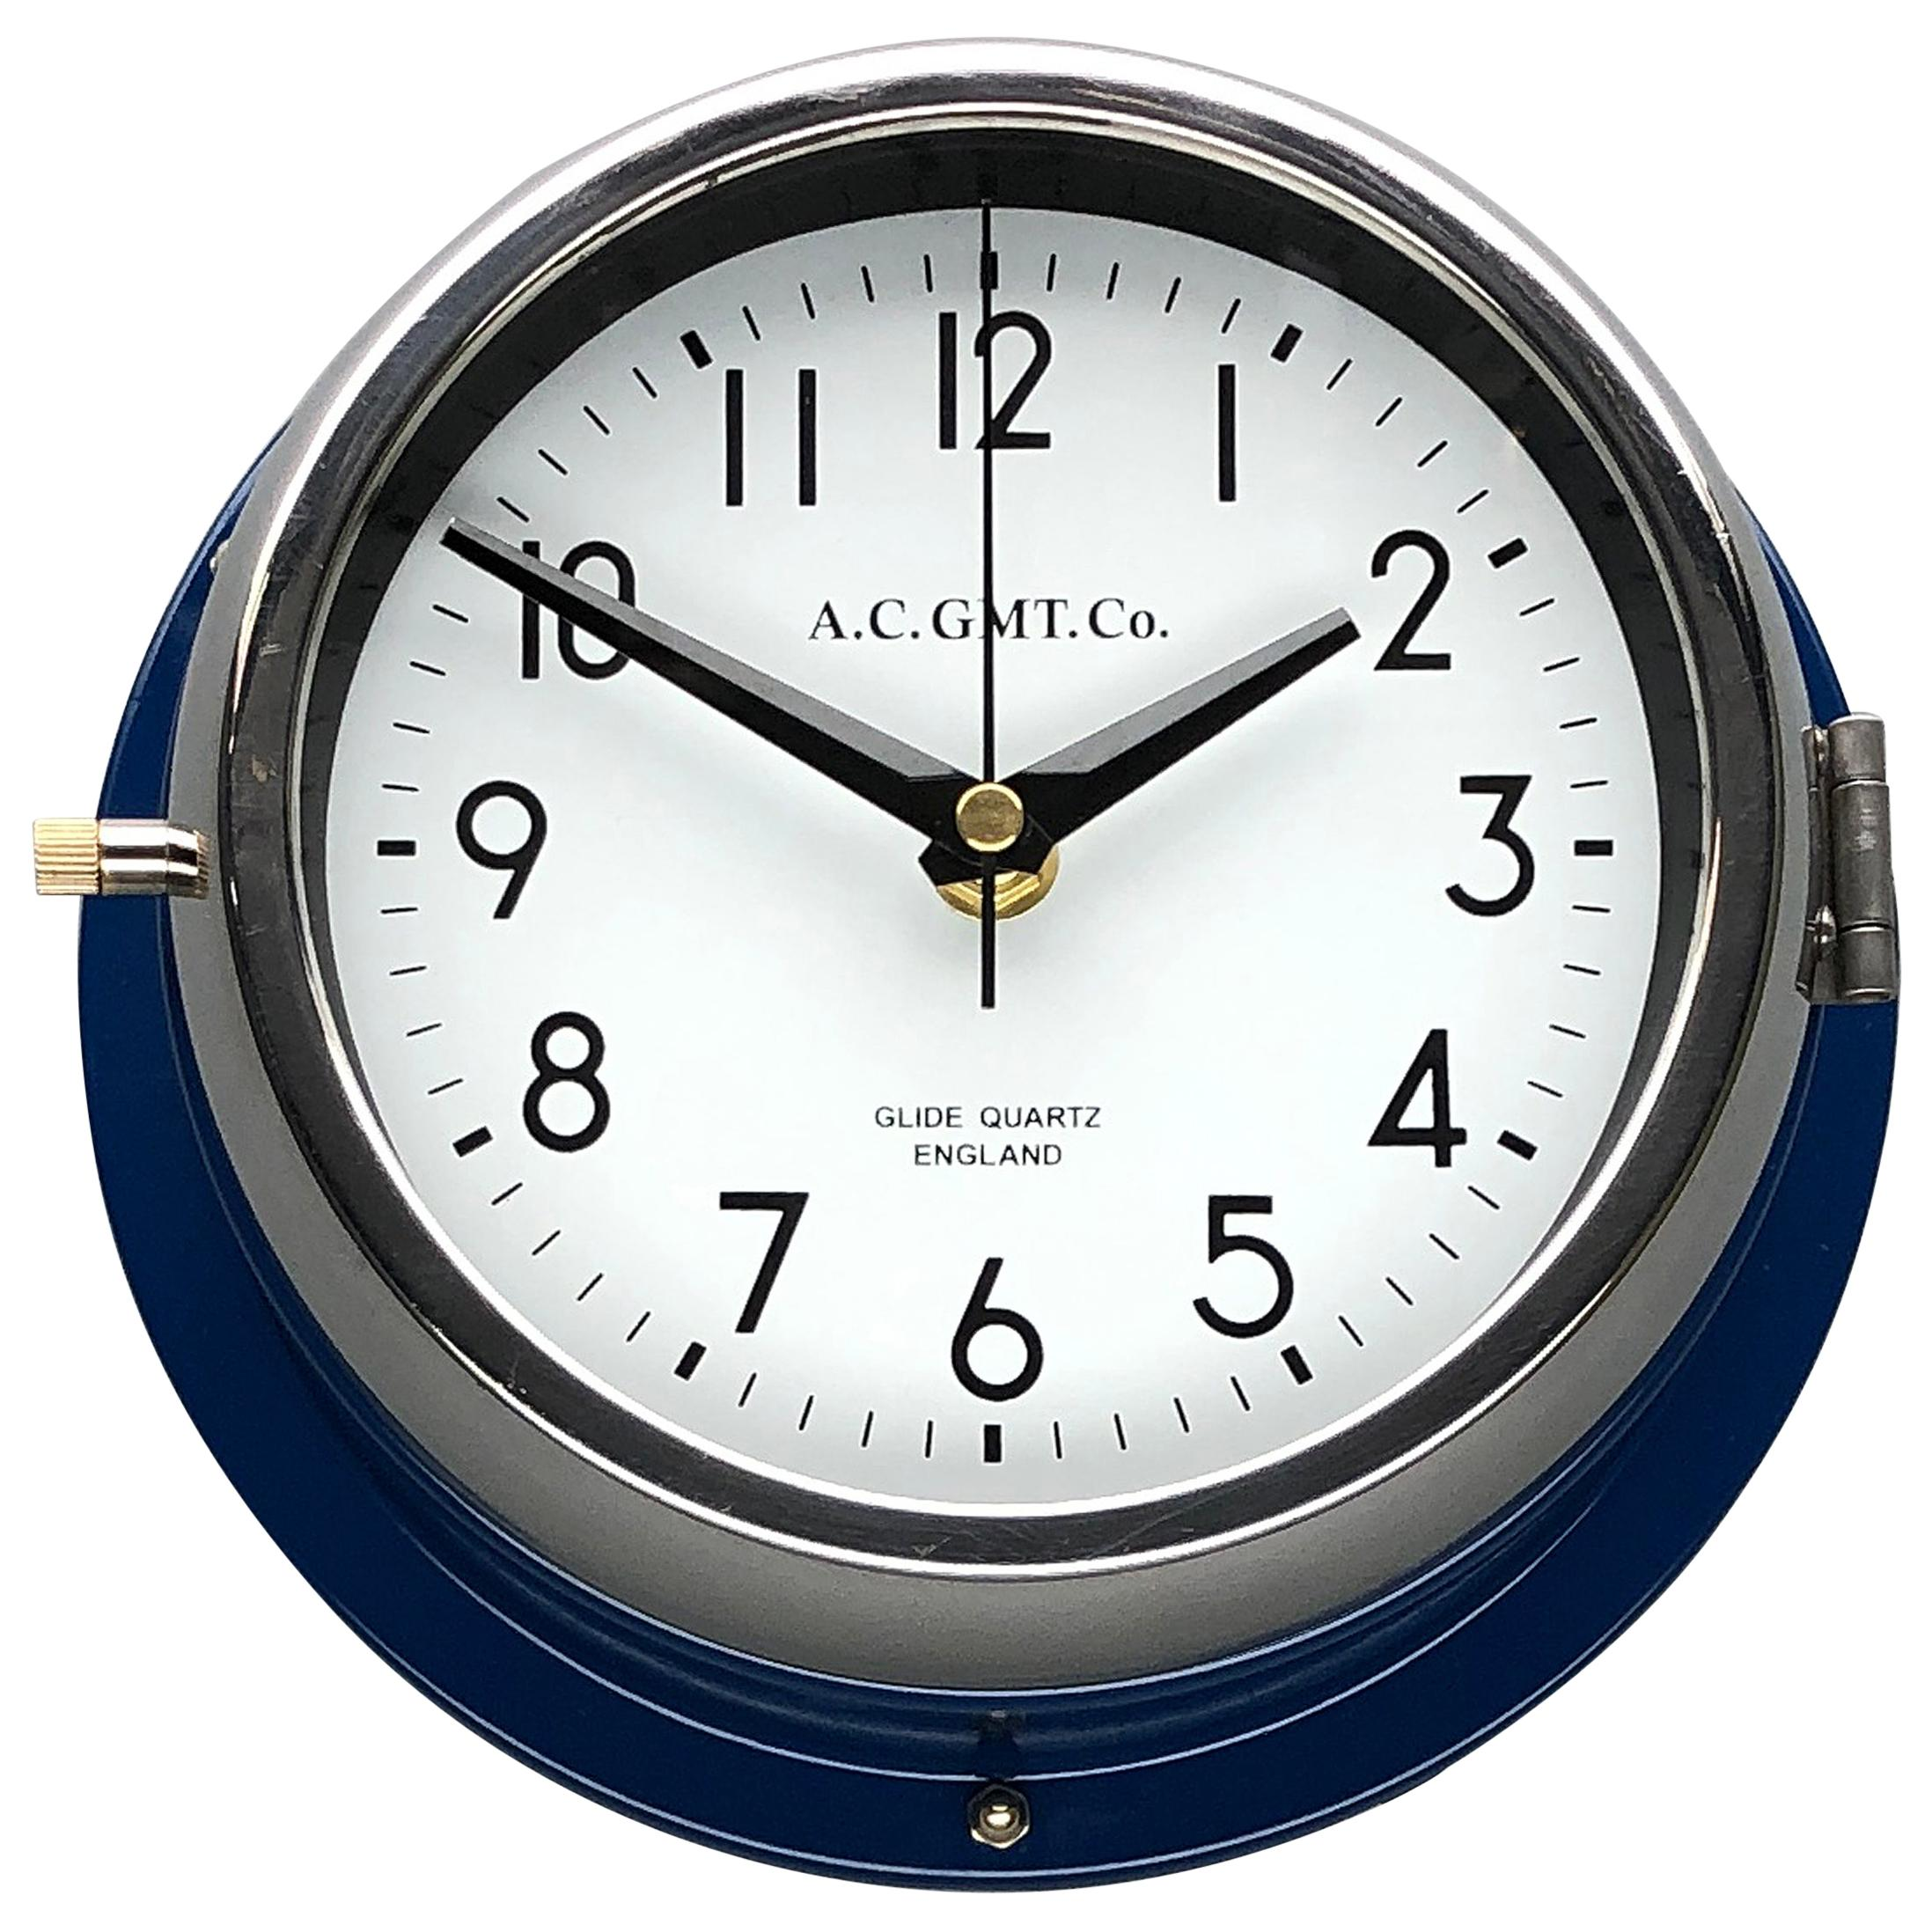 1970s British Classic Blue & Chrome AC GMT Co. Industrial Wall Clock White Dial